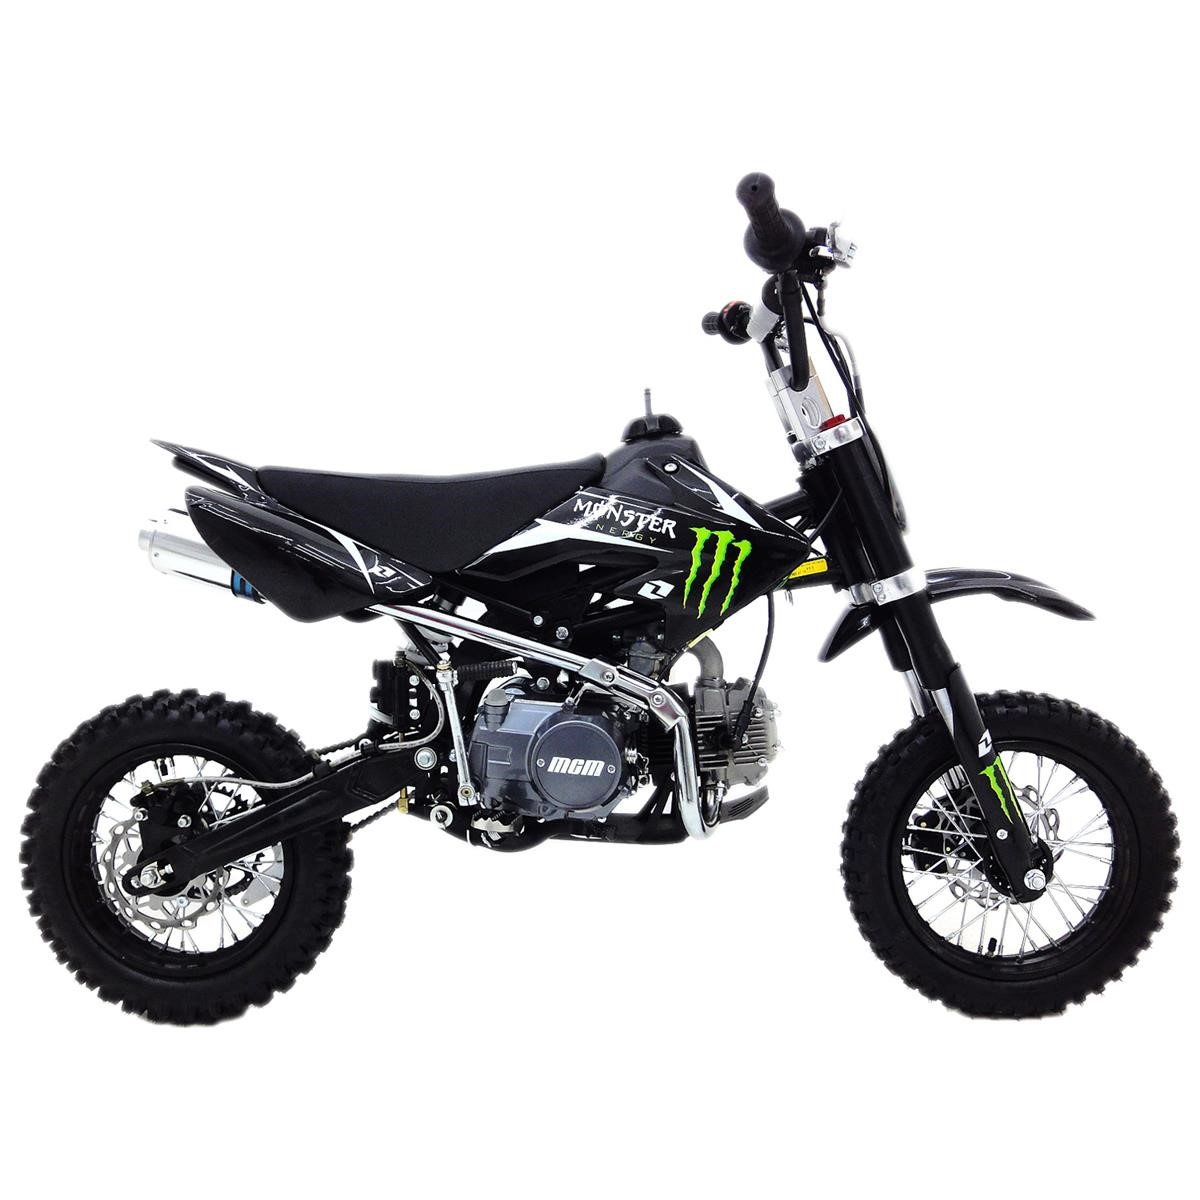 cenkoo 140 140cc 17 14 cross dirt bike pit bike schwarz. Black Bedroom Furniture Sets. Home Design Ideas